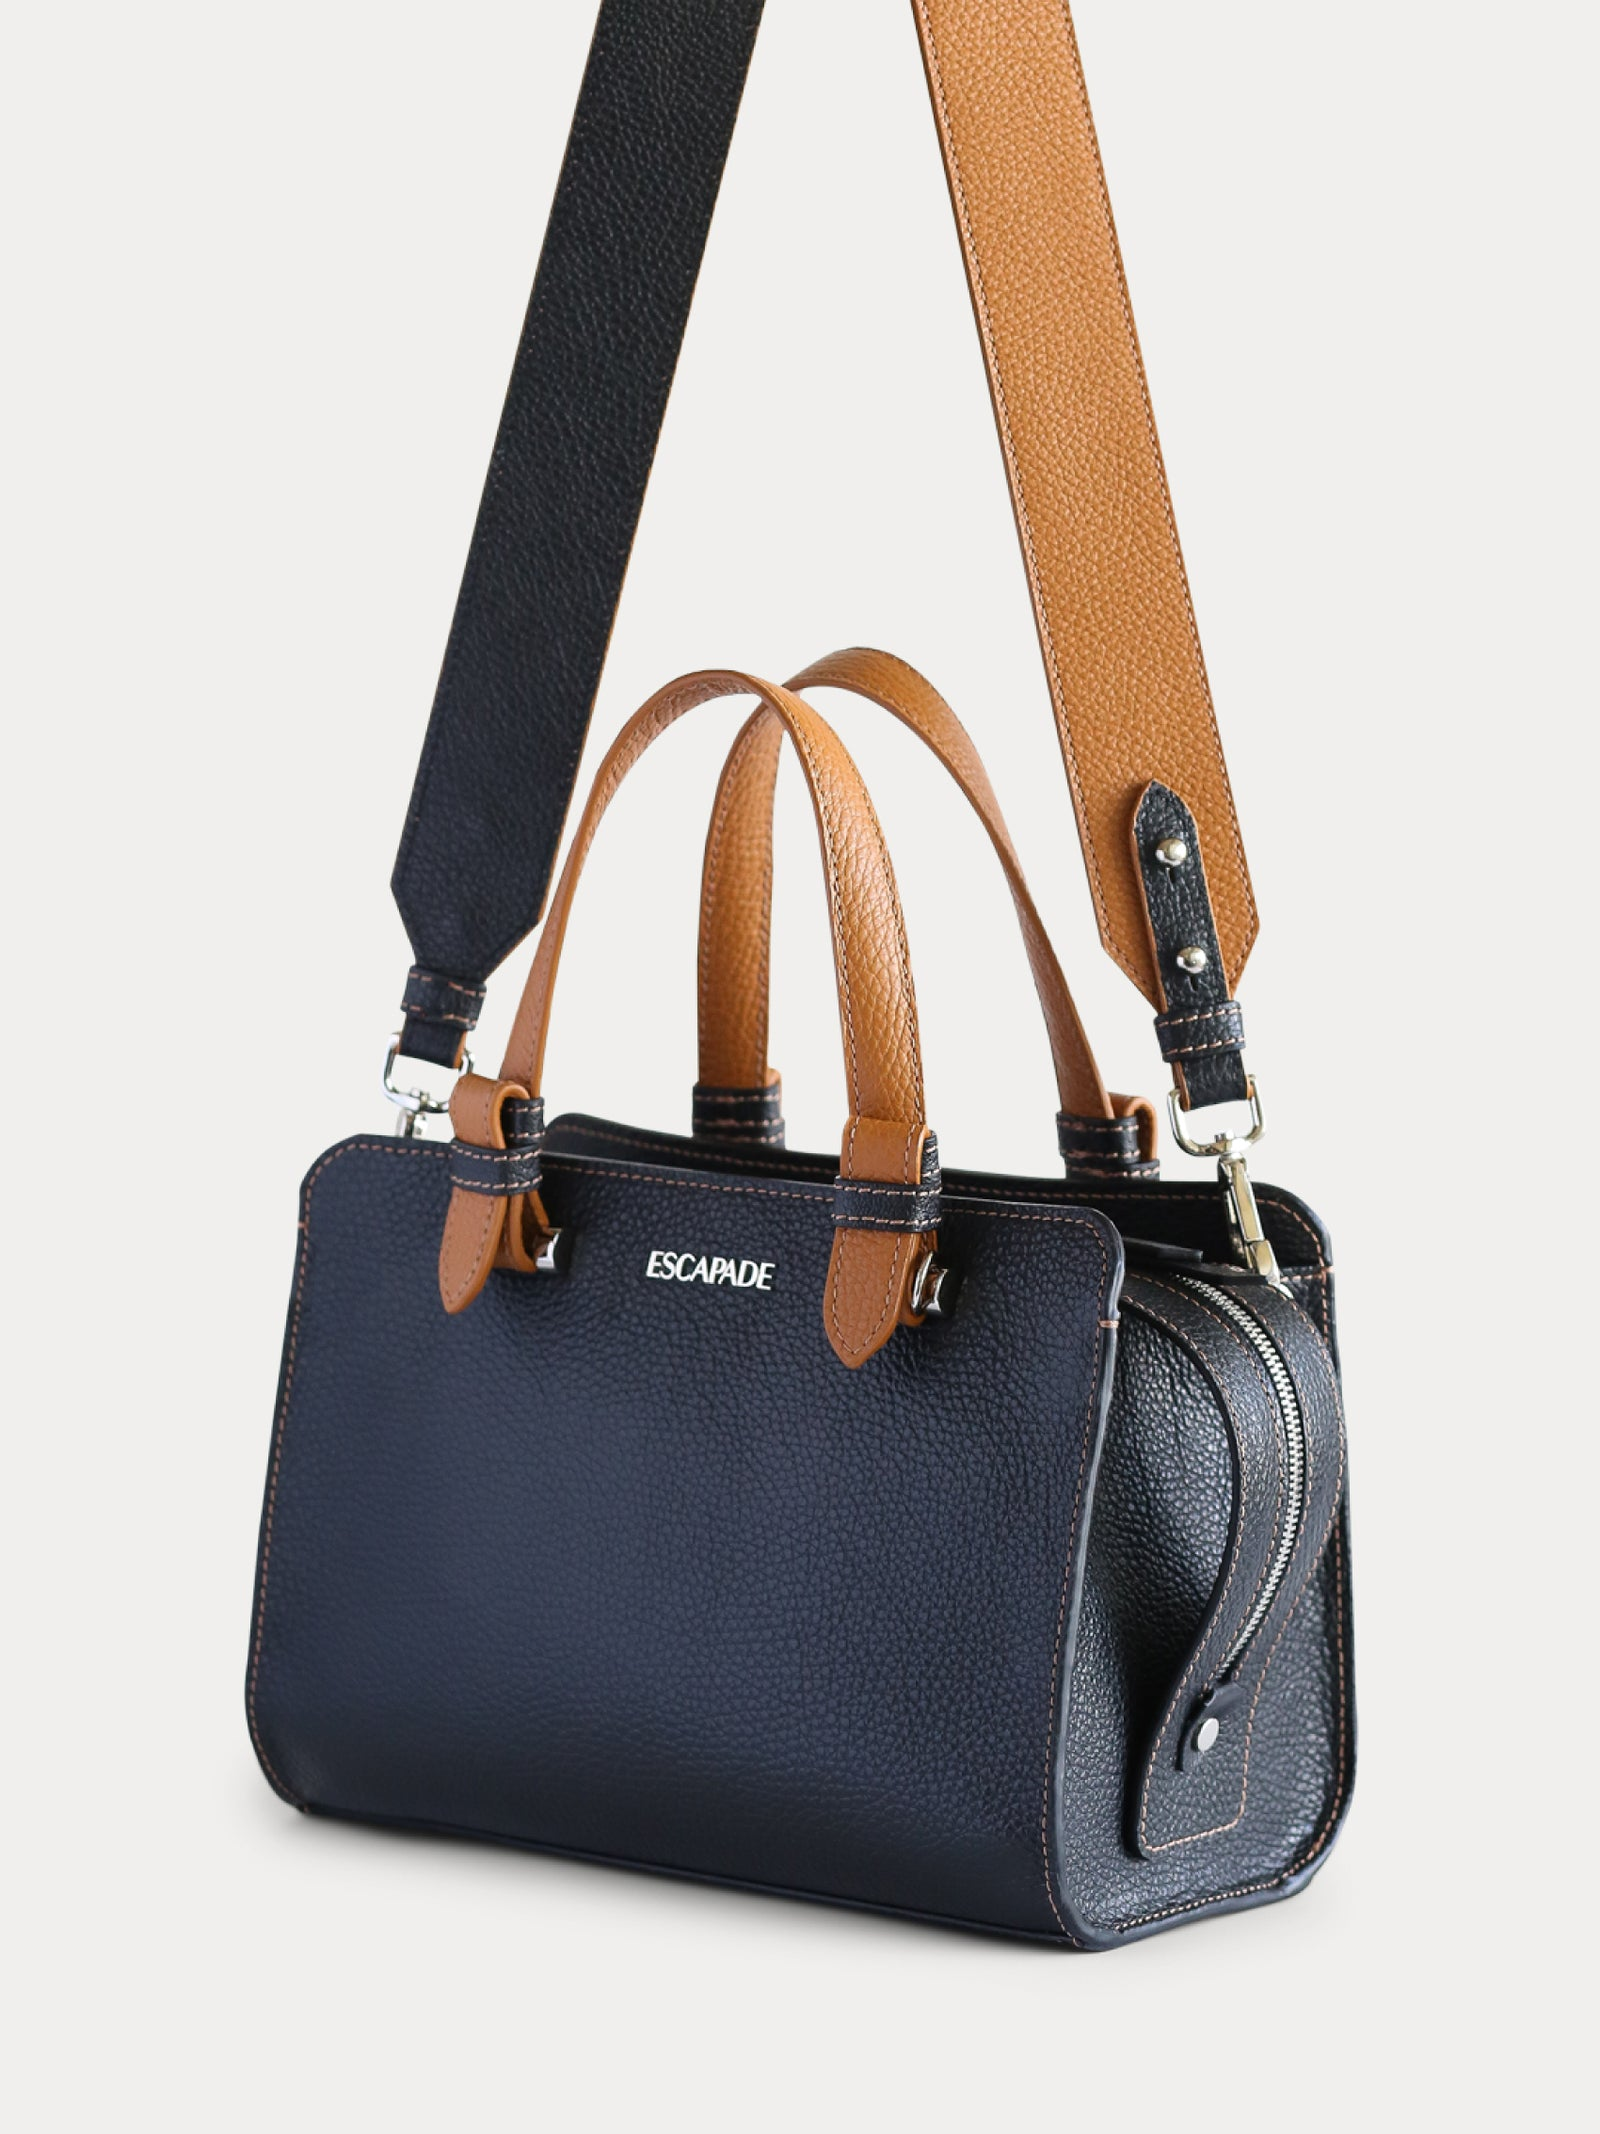 Soho Chic. Leather Satchel Bag.